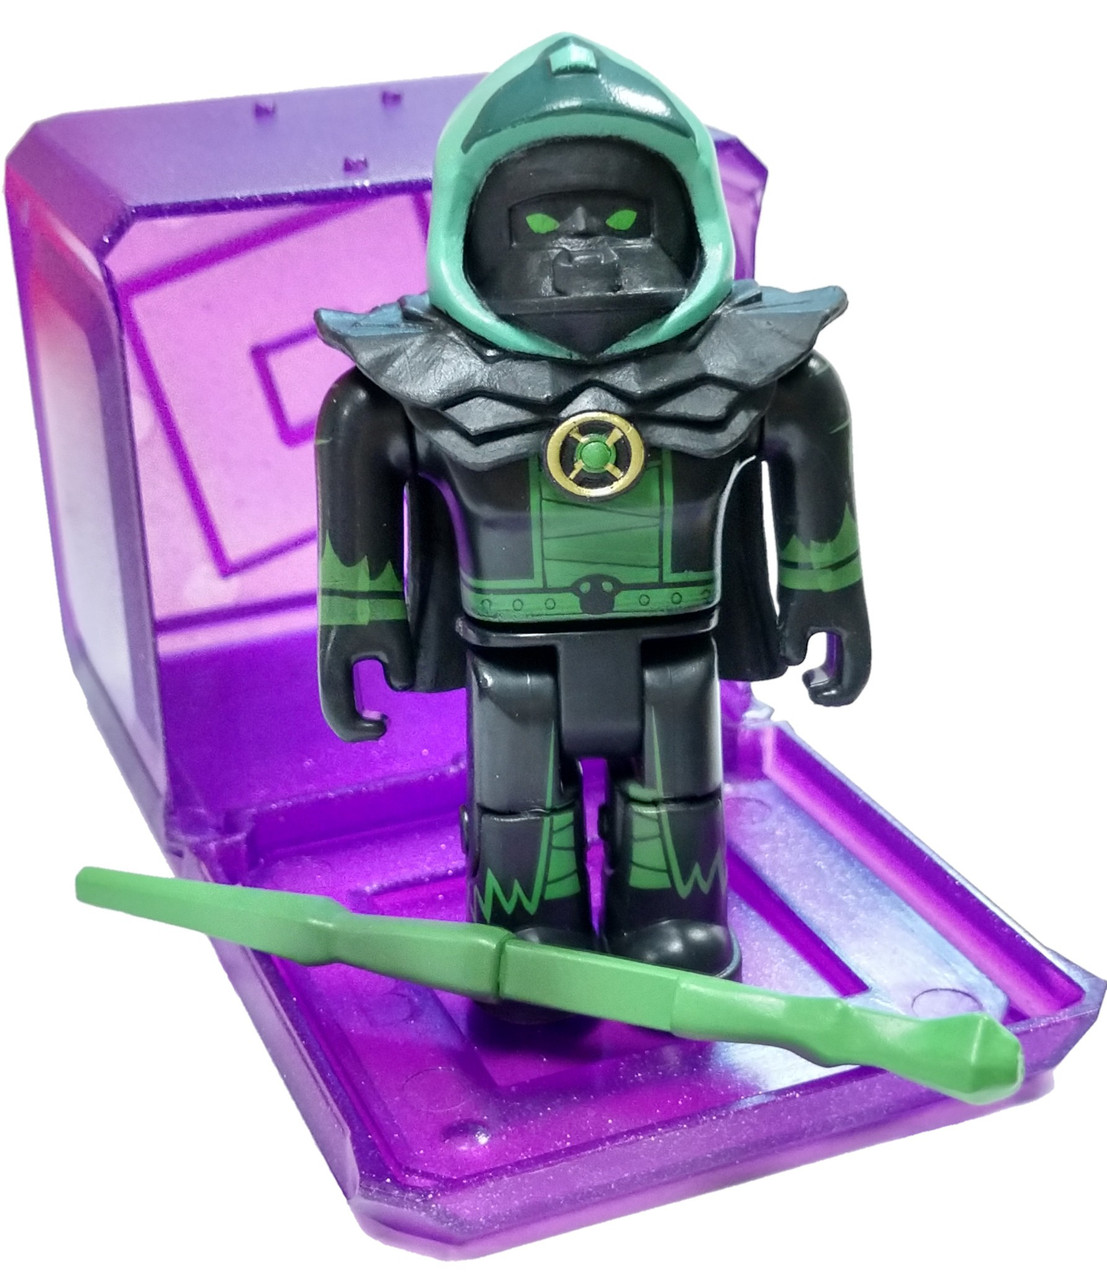 Details About Roblox Celebrity Collection Series 3 Mystery Pack Purple Cube - Roblox Celebrity Collection Series 3 Sethalonian Mini Figure